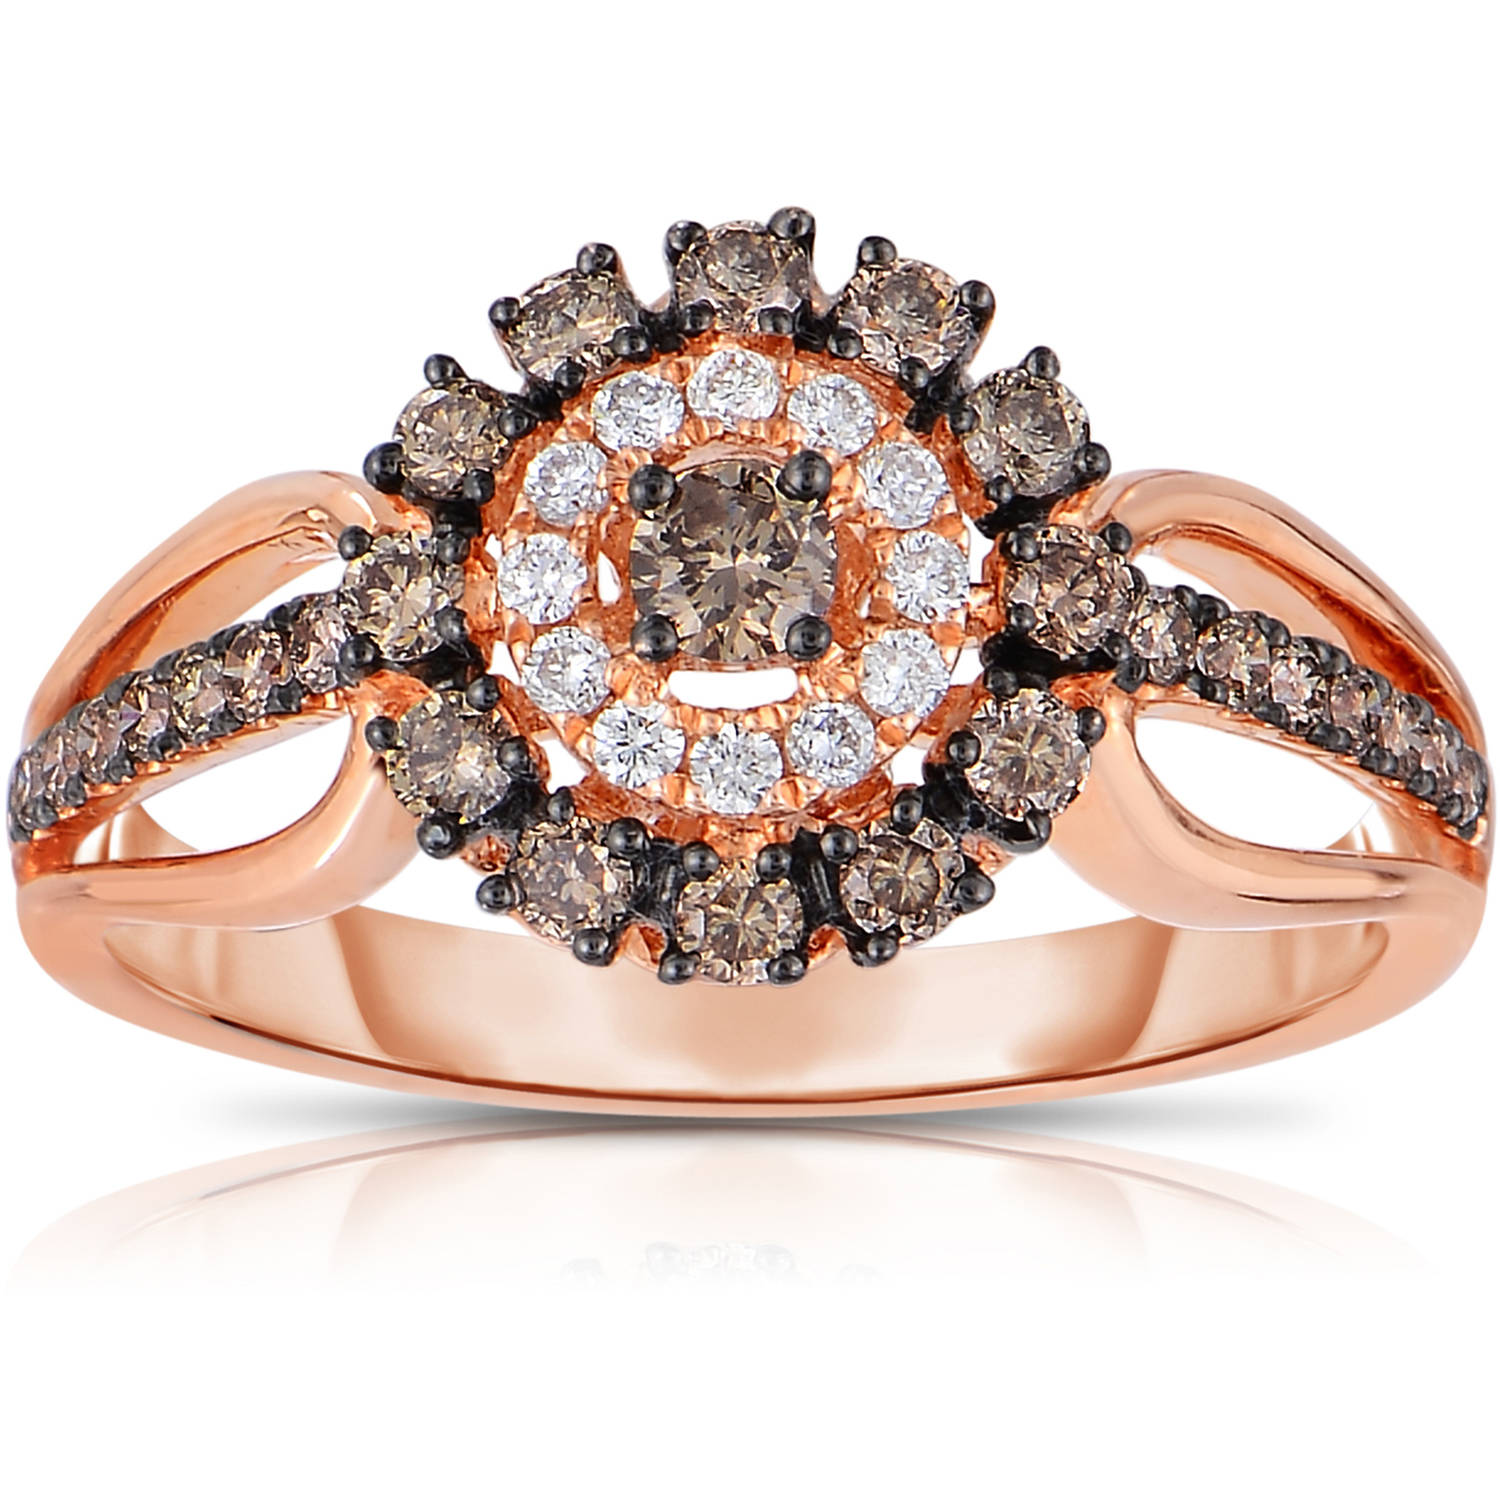 5/8 Carat T.W. Diamond 14kt Rose Gold Fashion Ring Set with Champagne and HI/I2I3 Quality Diamonds